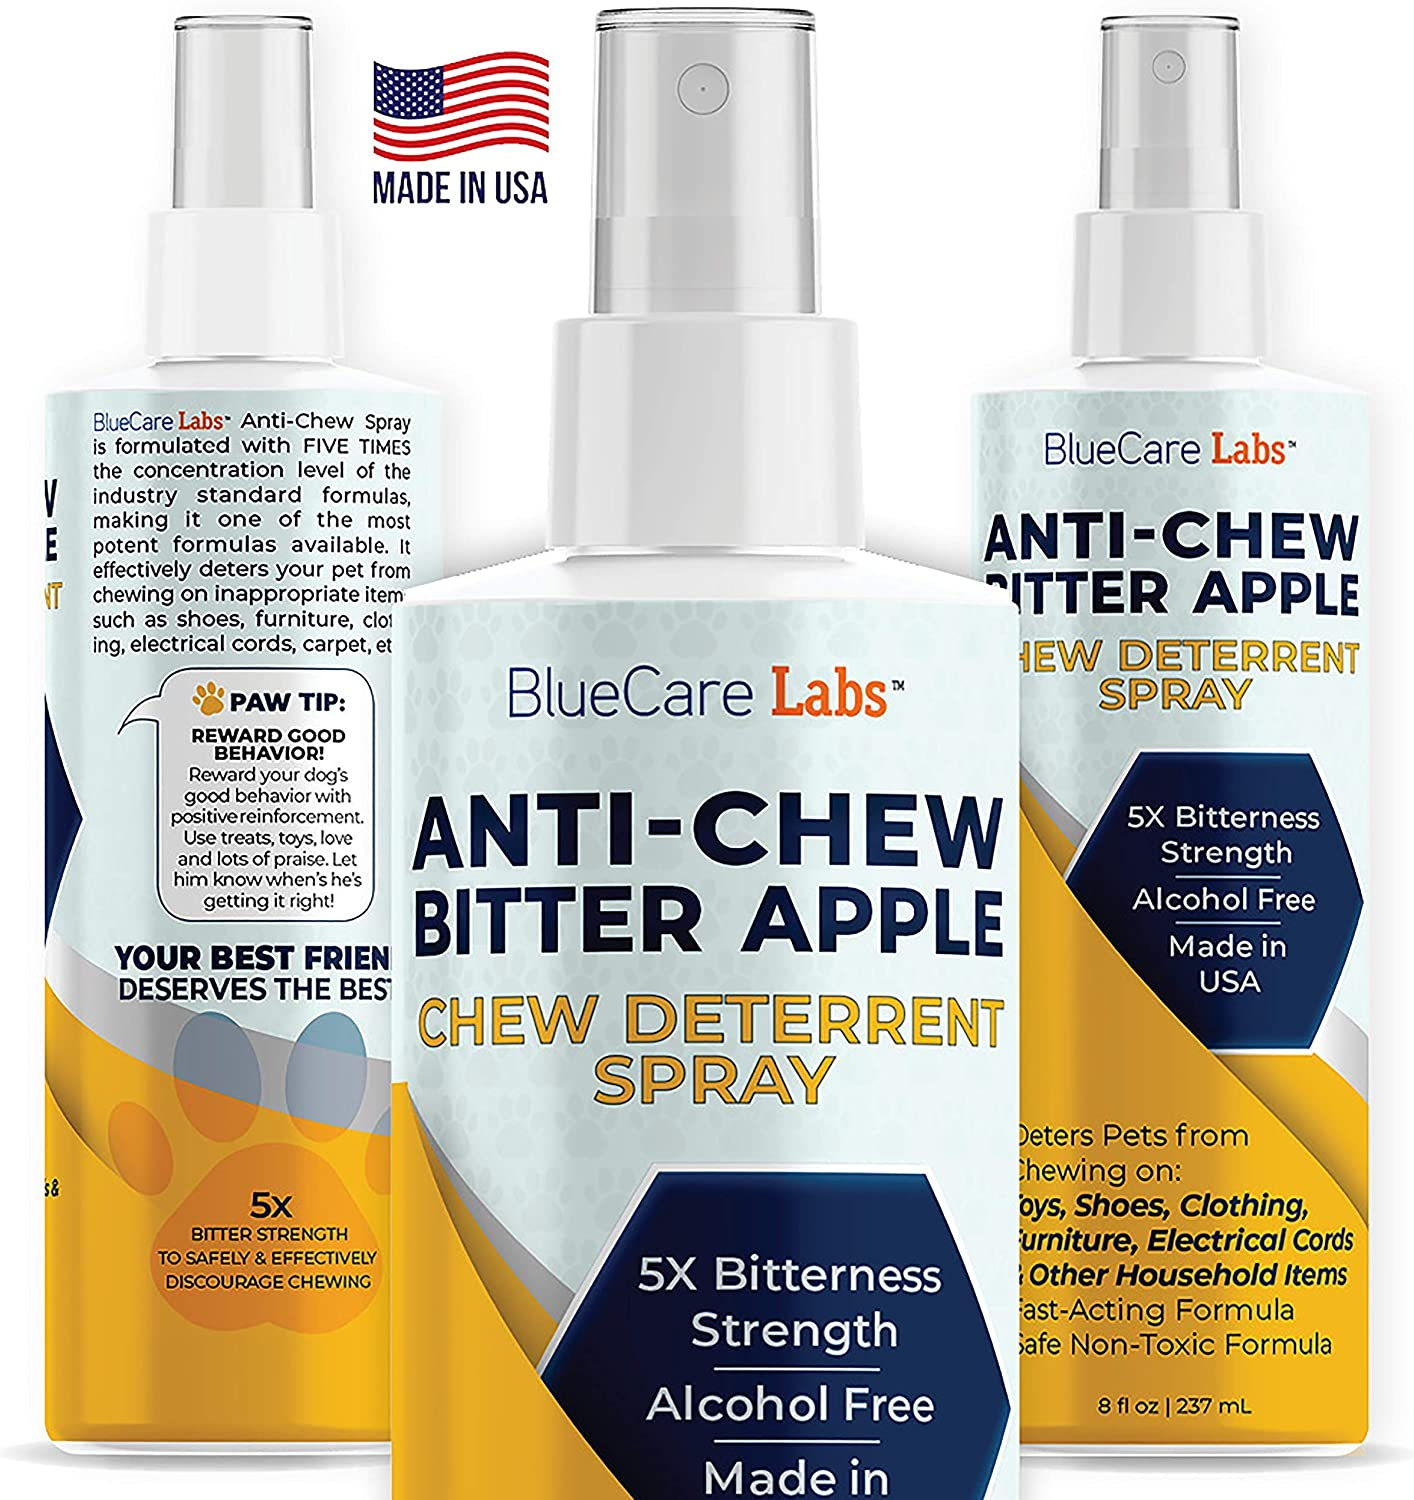 Bitter Apple Spray for Dogs Anti Chew Bitter Deterrent Spray for Dogs & Puppies Cats & Kittens - Training Treatment & Powerful Anti Chew Spray - Alcohol Free & Non Toxic Natural Safe No Chew Spray 8oz